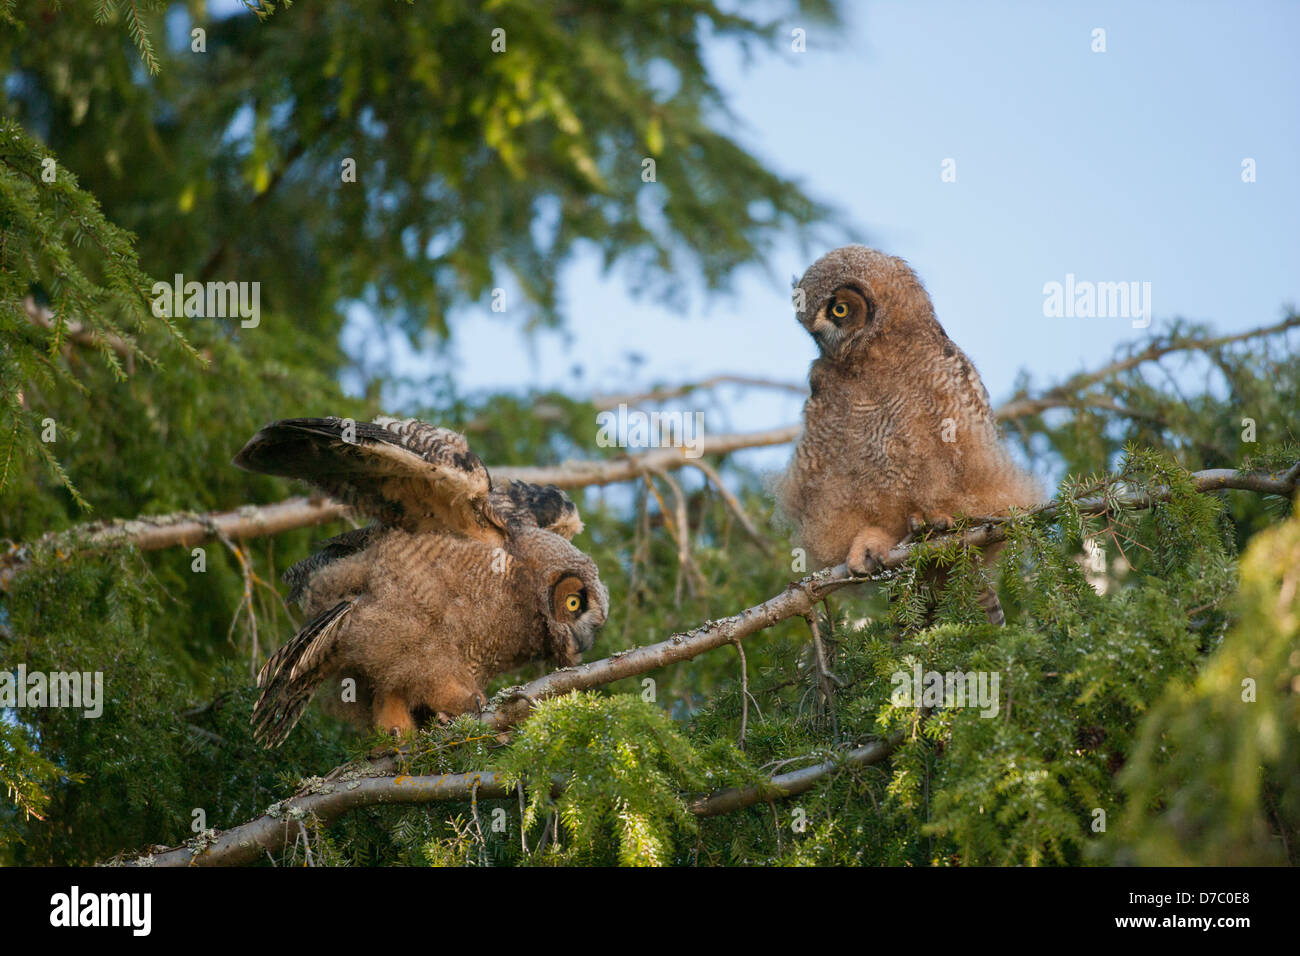 Great horned owl owlet fledglings balancing on fir tree-Victoria, Vancouver Island British Columbia, Canada. - Stock Image